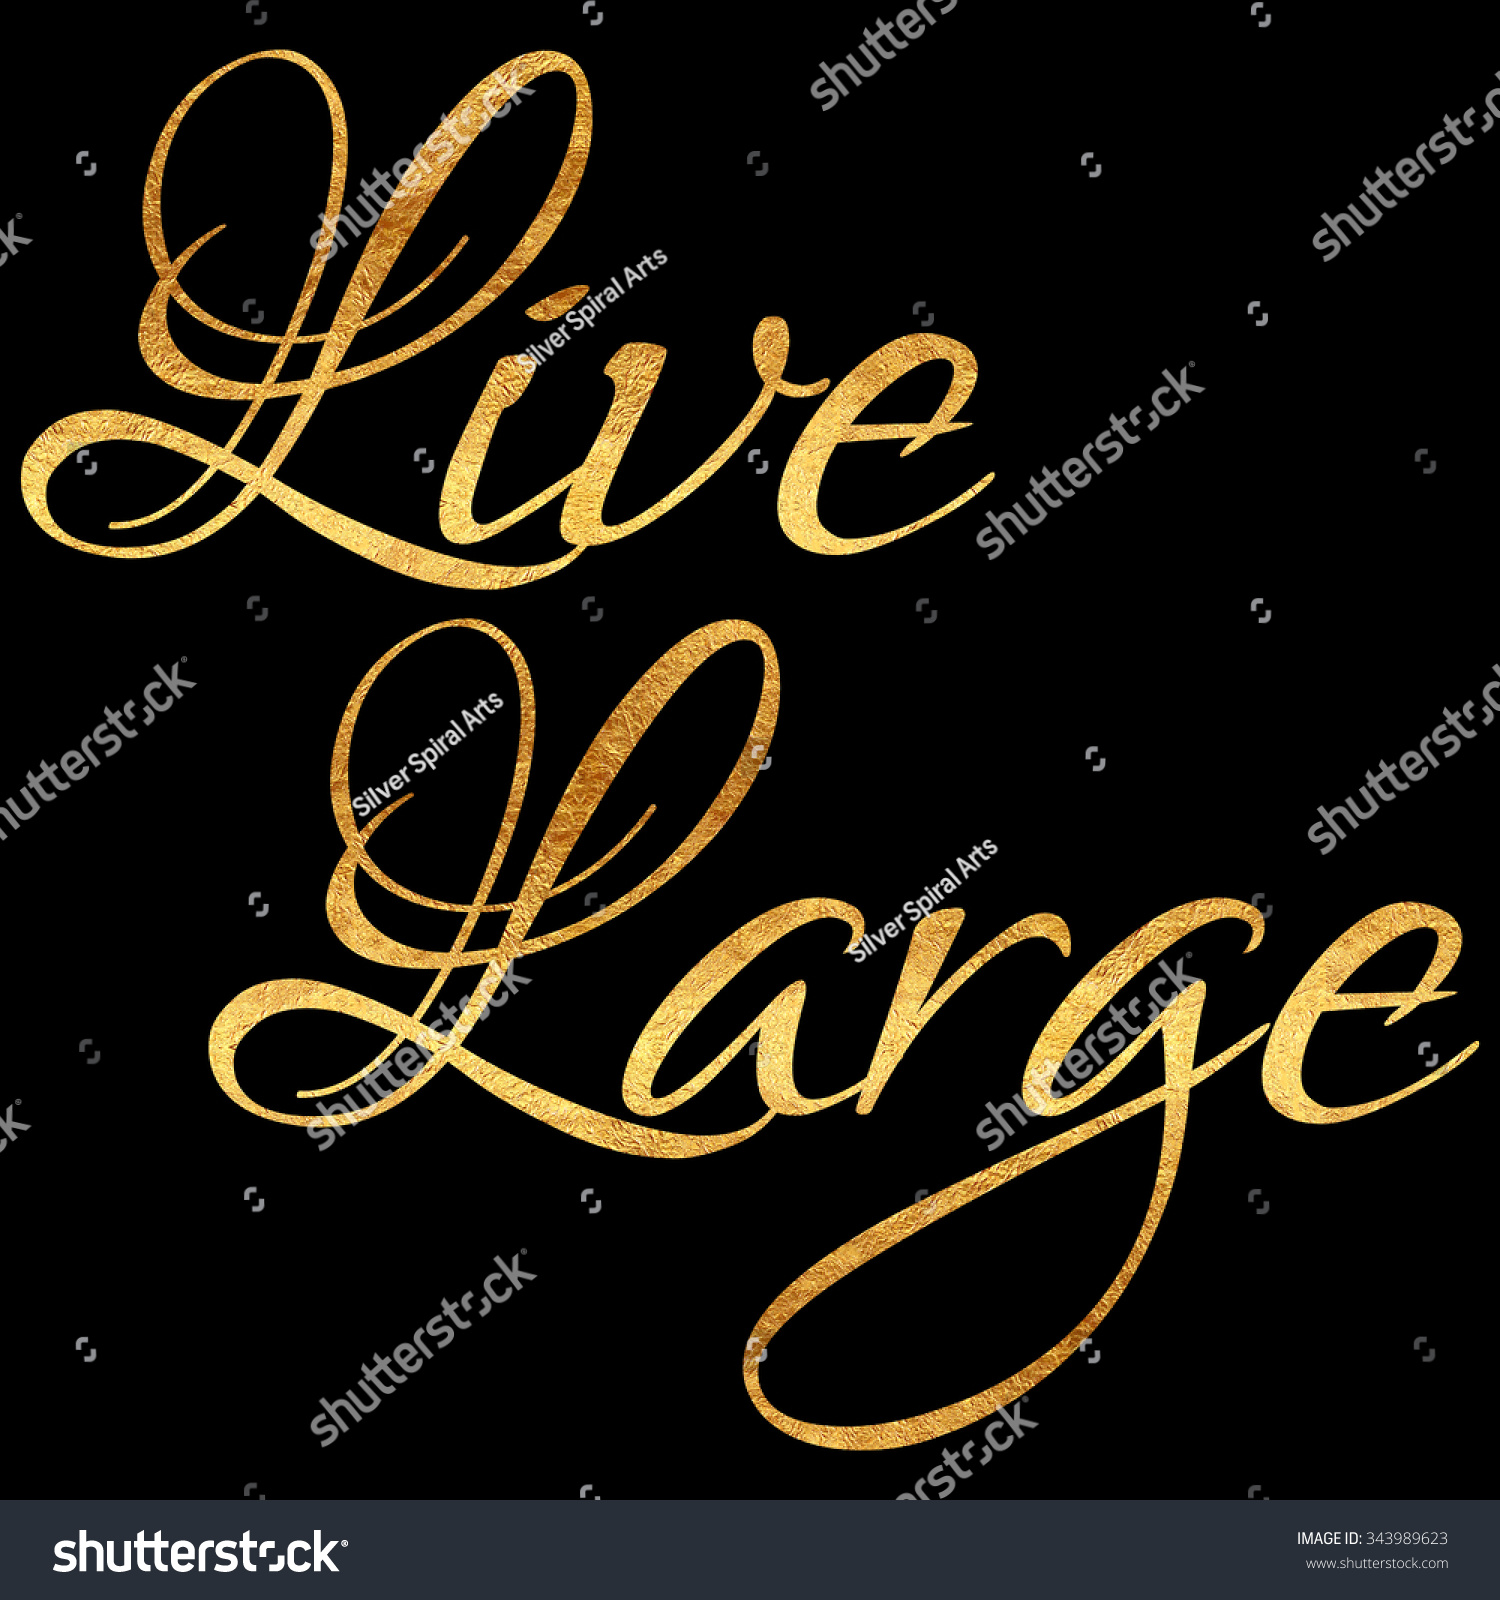 Live Gold Quotes Live Large Quote Gold Faux Foil Stock Illustration 343989623